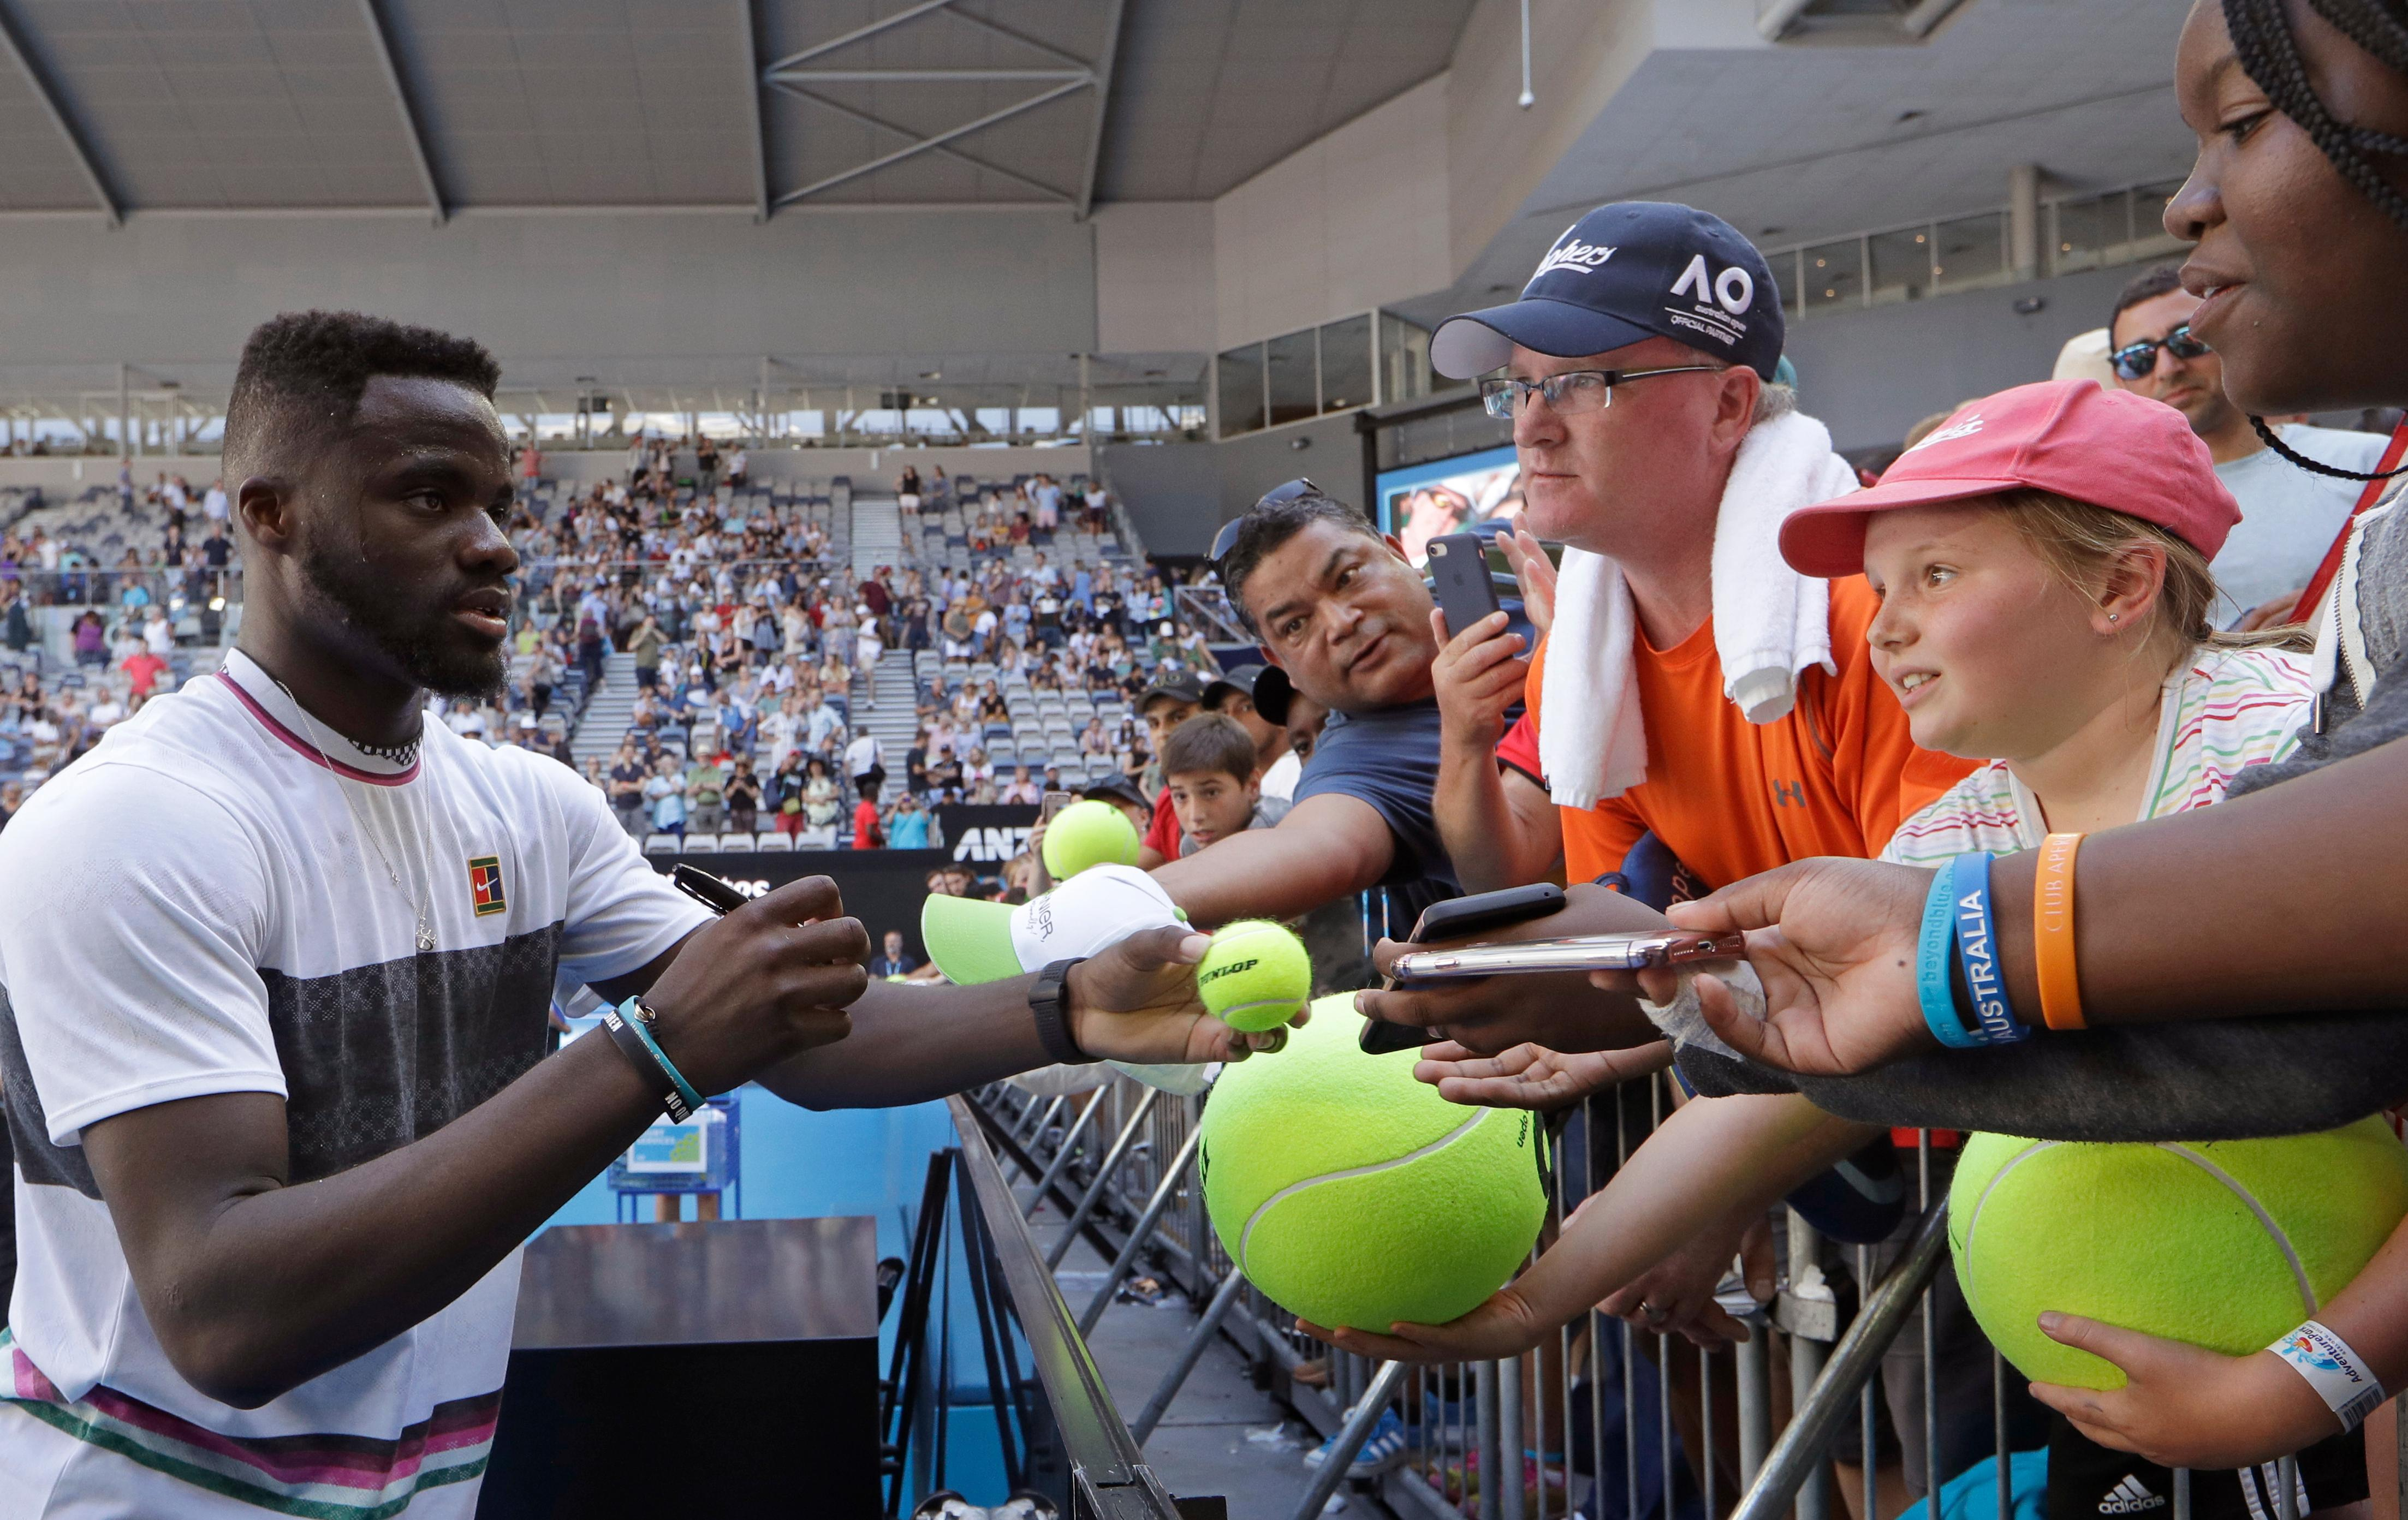 United States' Frances Tiafoe signs autographs after defeating Bulgaria's Grigor Dimitrov in their fourth round at the Australian Open tennis championships in Melbourne, Australia, Sunday, Jan. 20, 2019. (AP Photo/Kin Cheung)